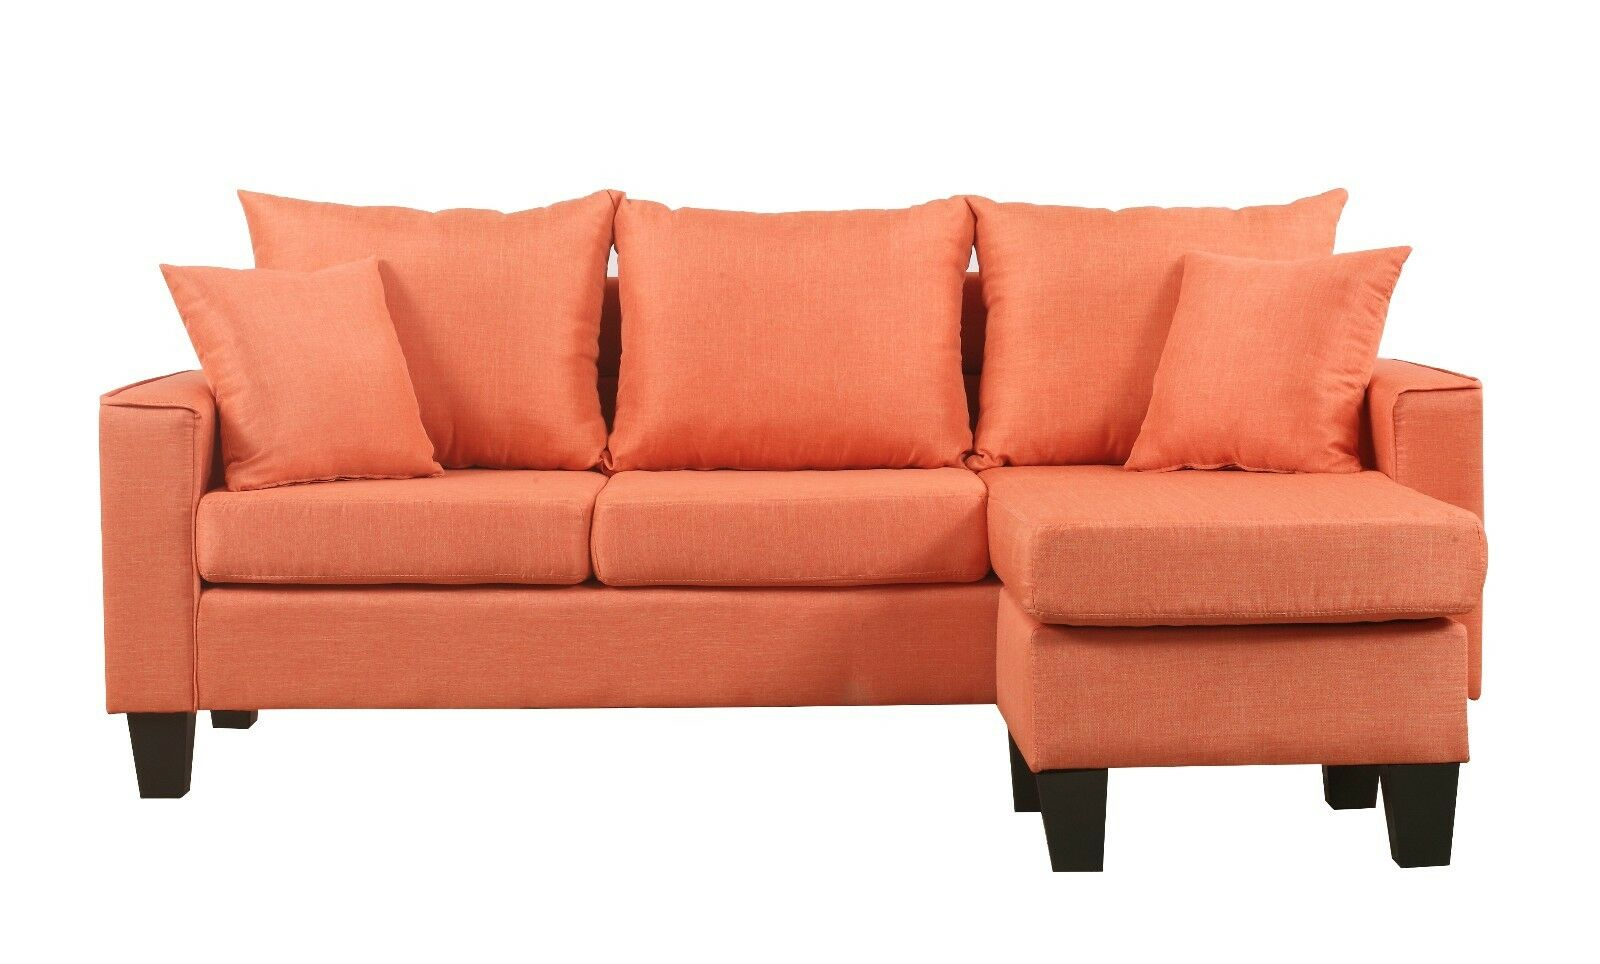 small space sectional sofa. Picture 1 Of 5 Small Space Sectional Sofa